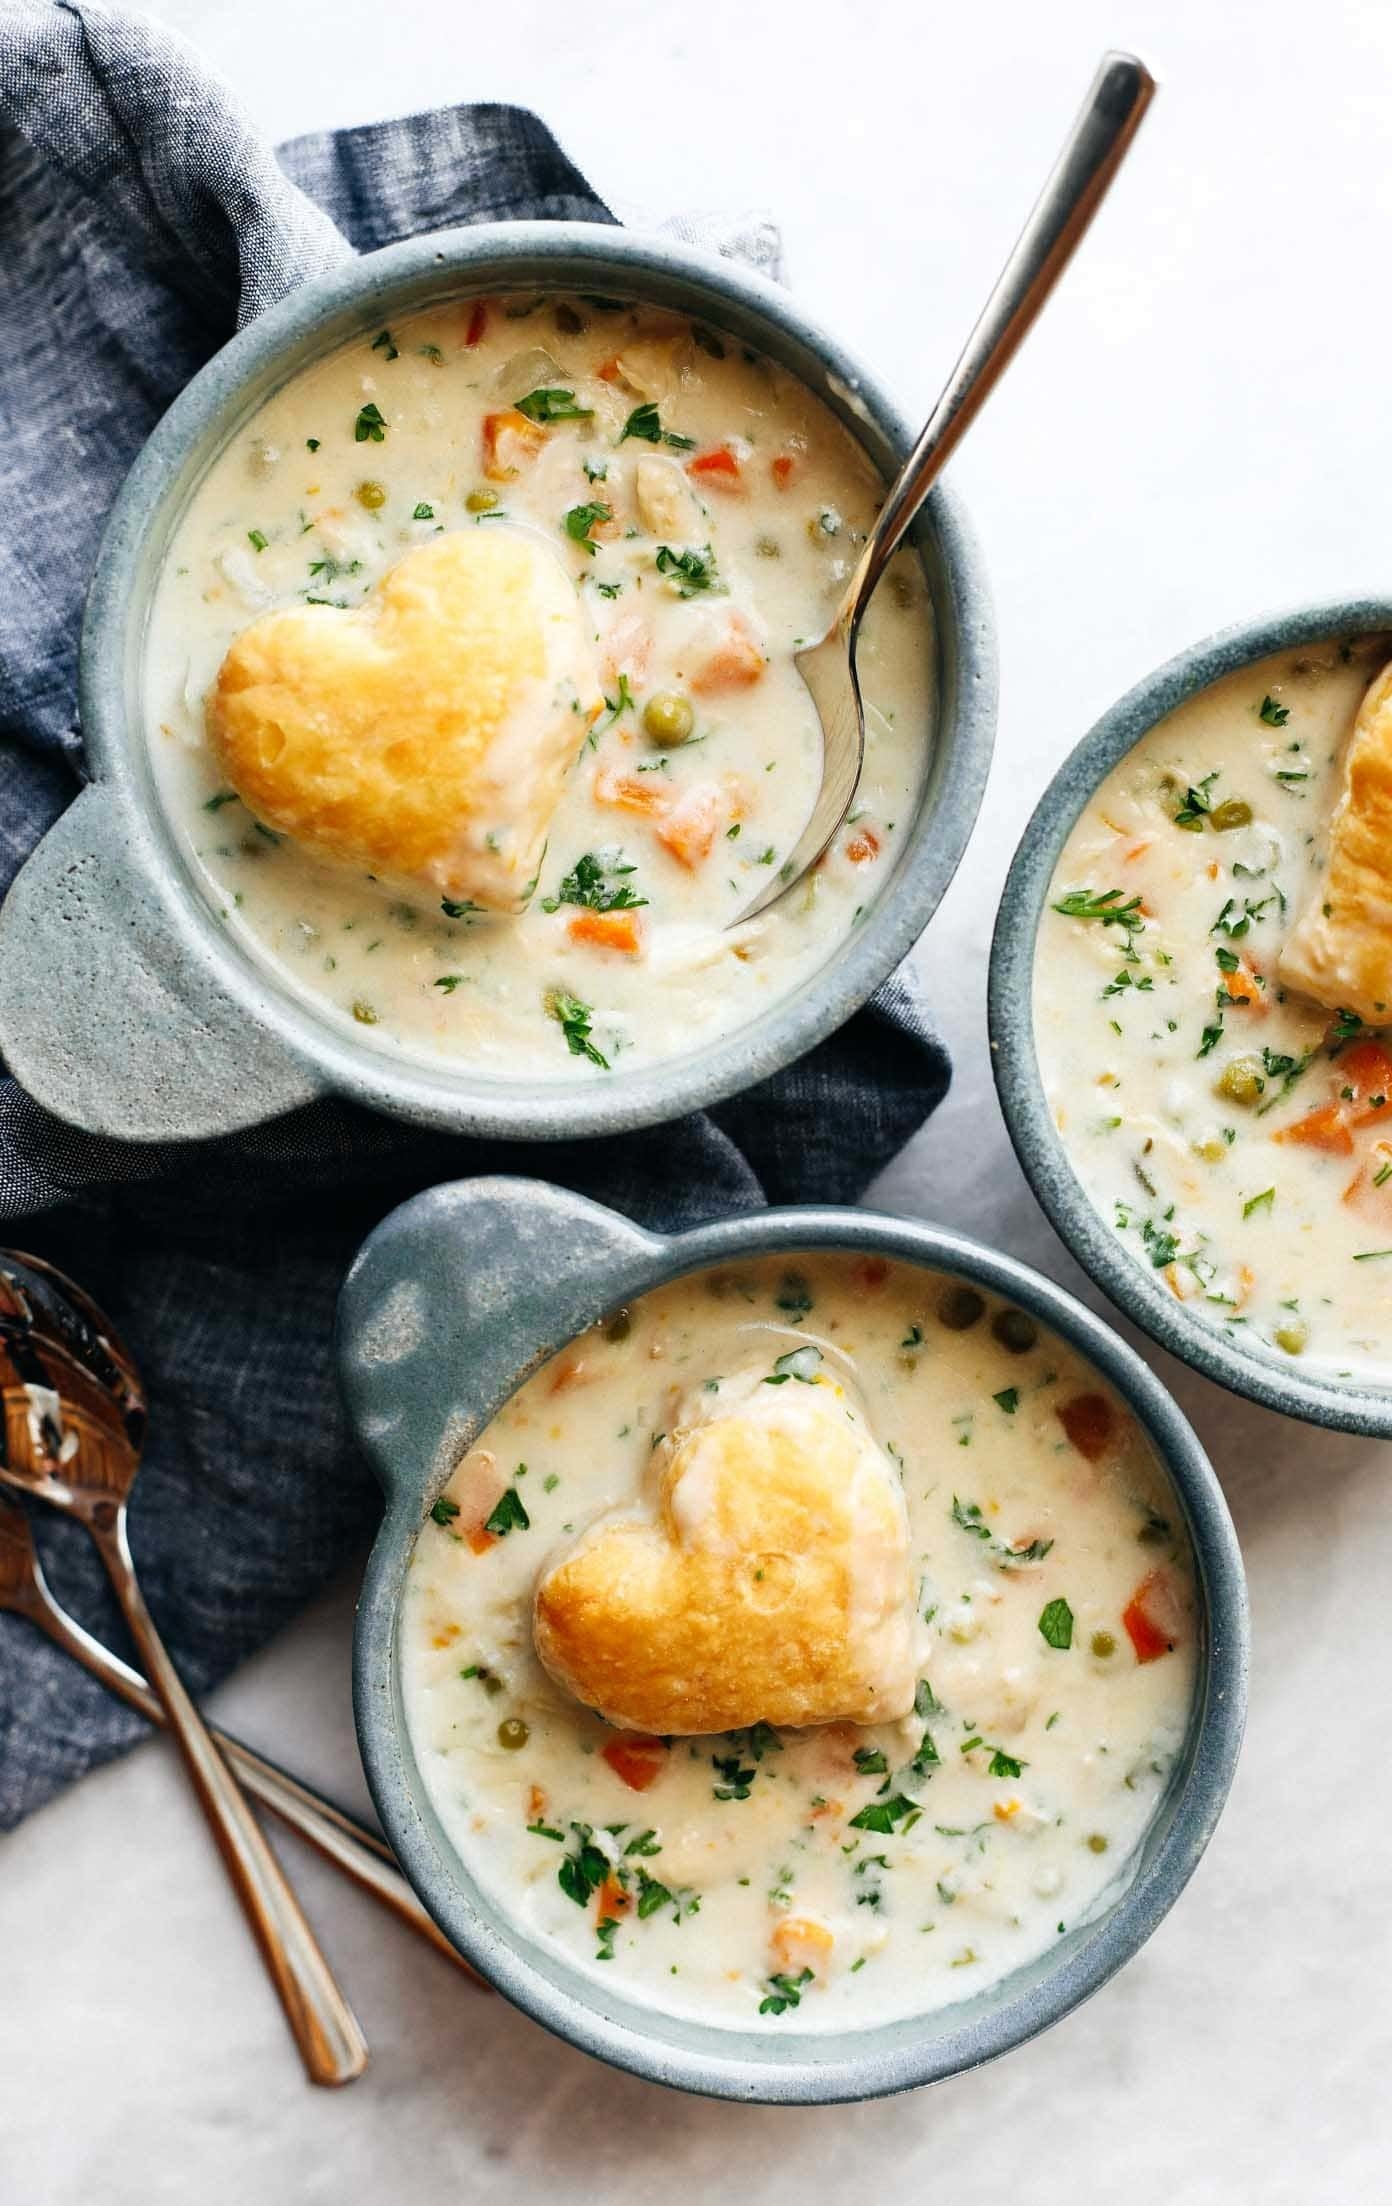 A bowl of chicken pot pie soup with a heart-shaped biscuit on top